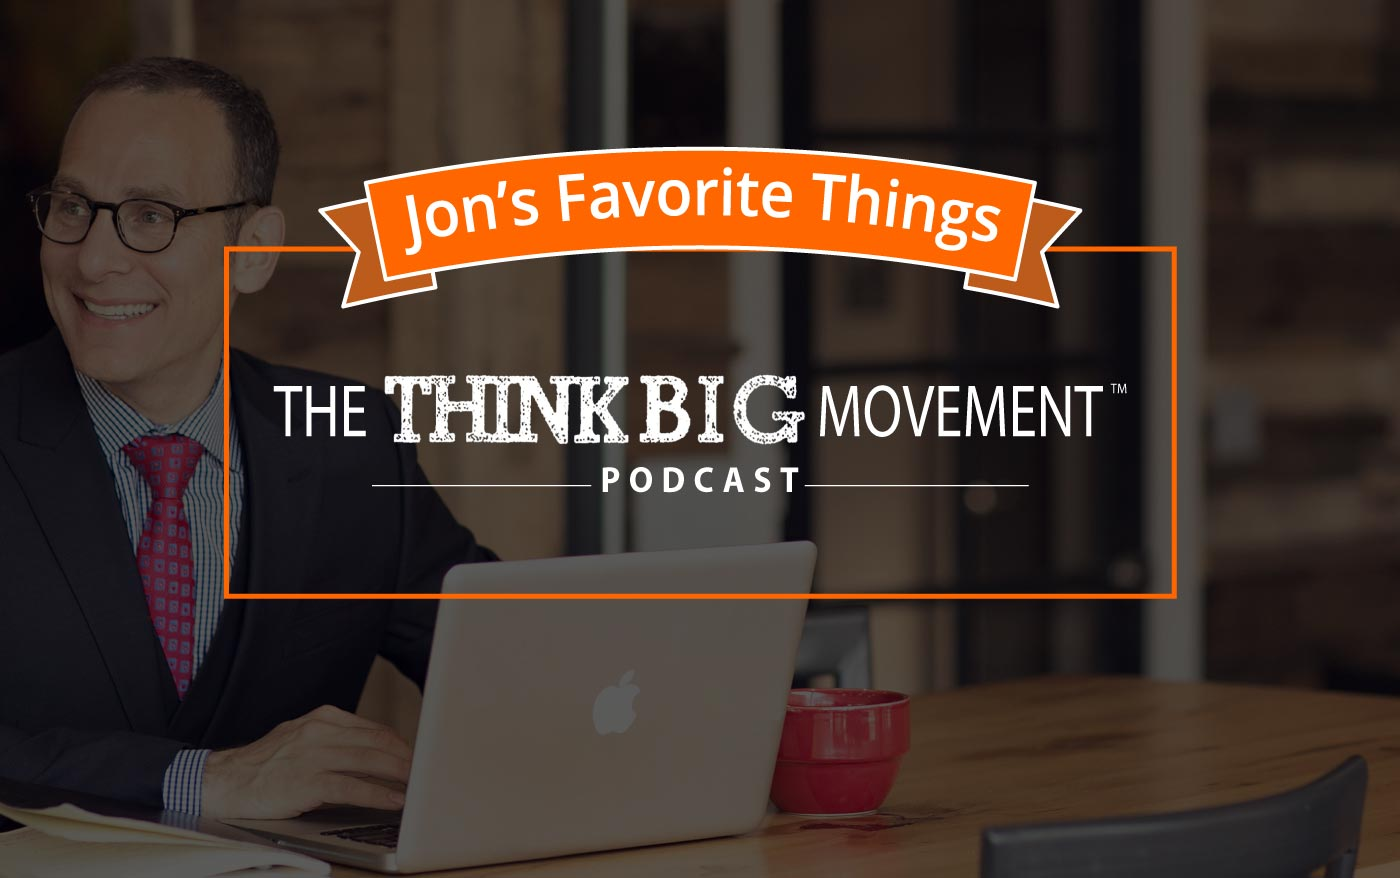 The Think Big Podcast - Jon's Favorite Things: Focus on Discipline and Fundamentals